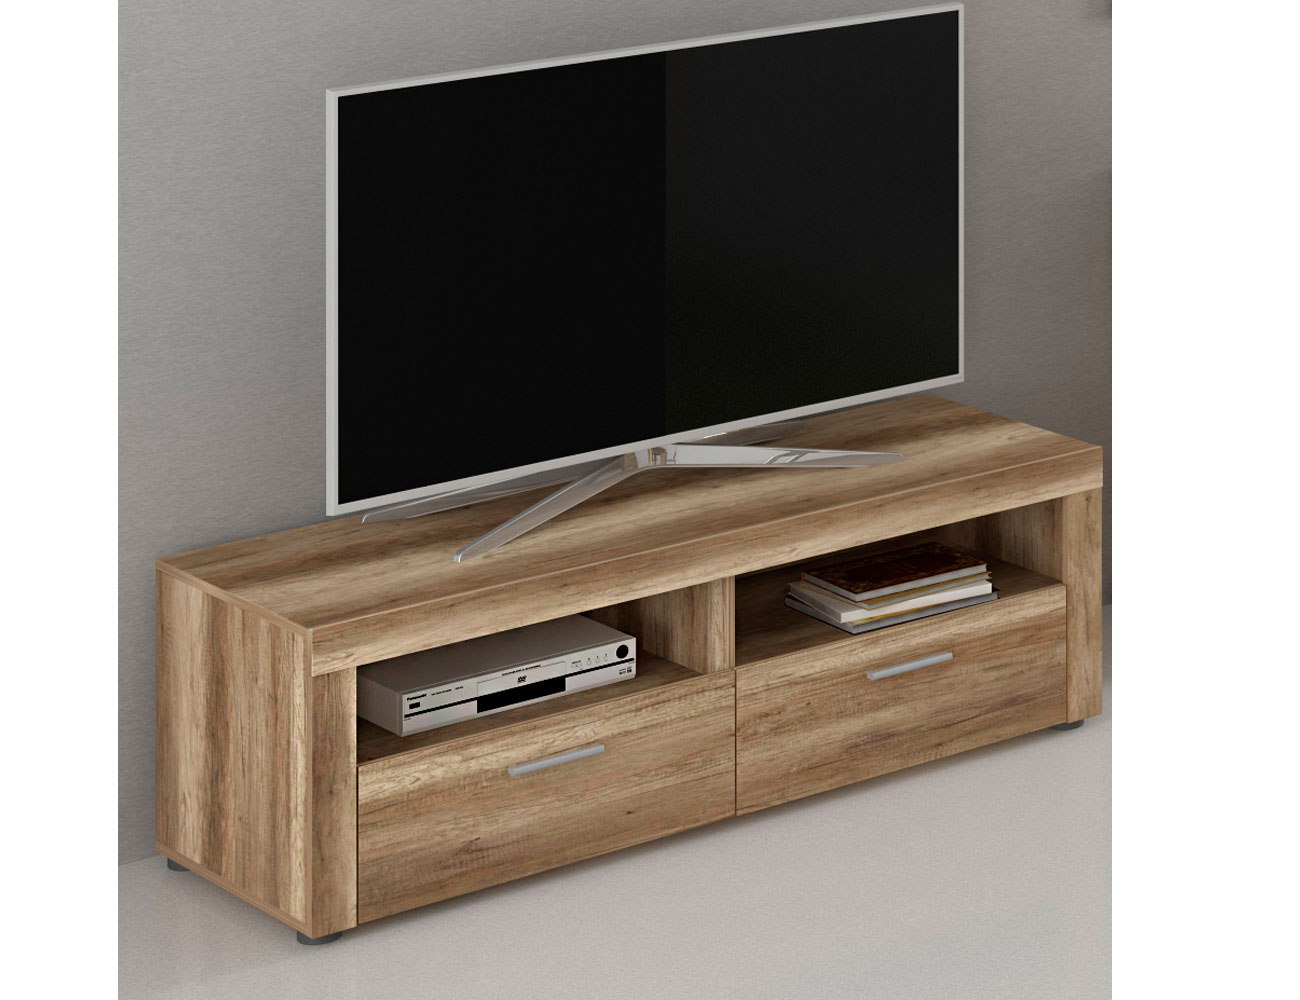 Mueble de salon bajo tv moderno 19499 factory del for Mueble tv moderno